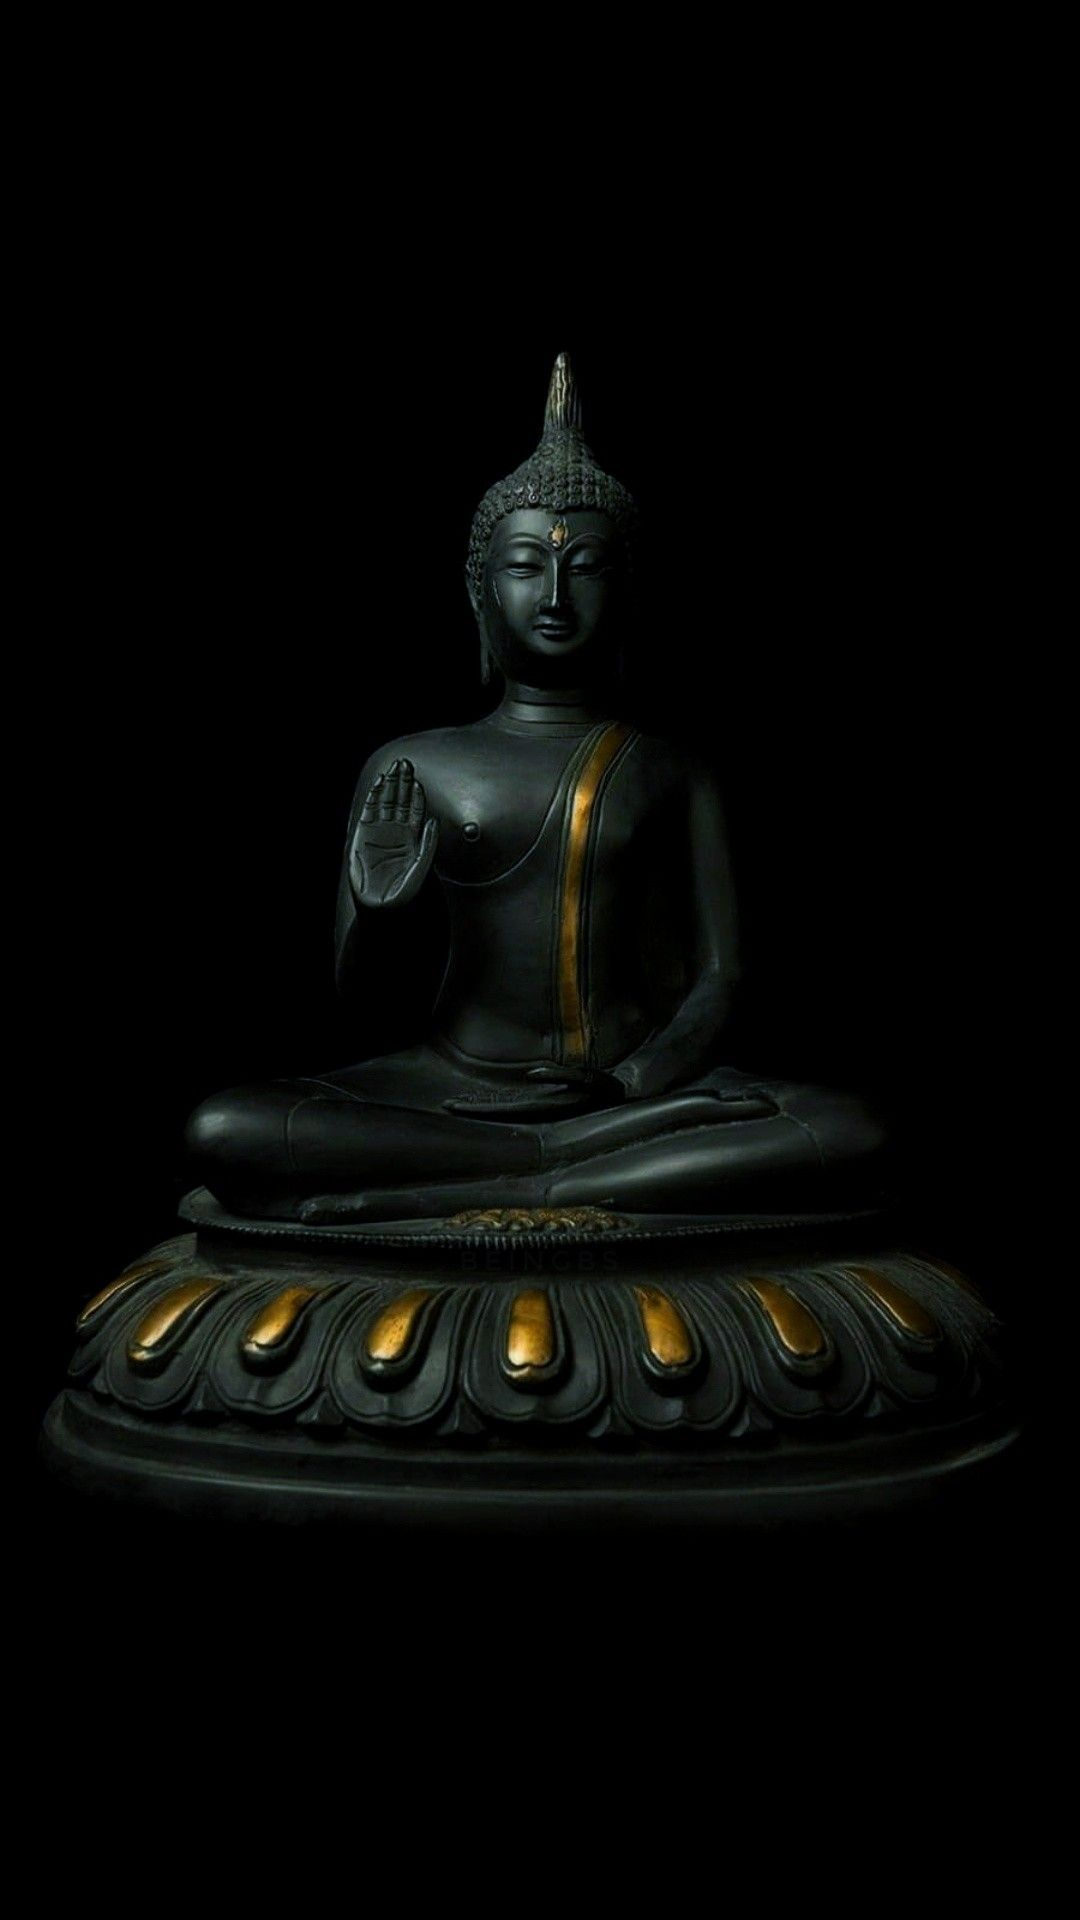 The Great Buddha Buddha Art Painting Buddha Art Buddha Artwork